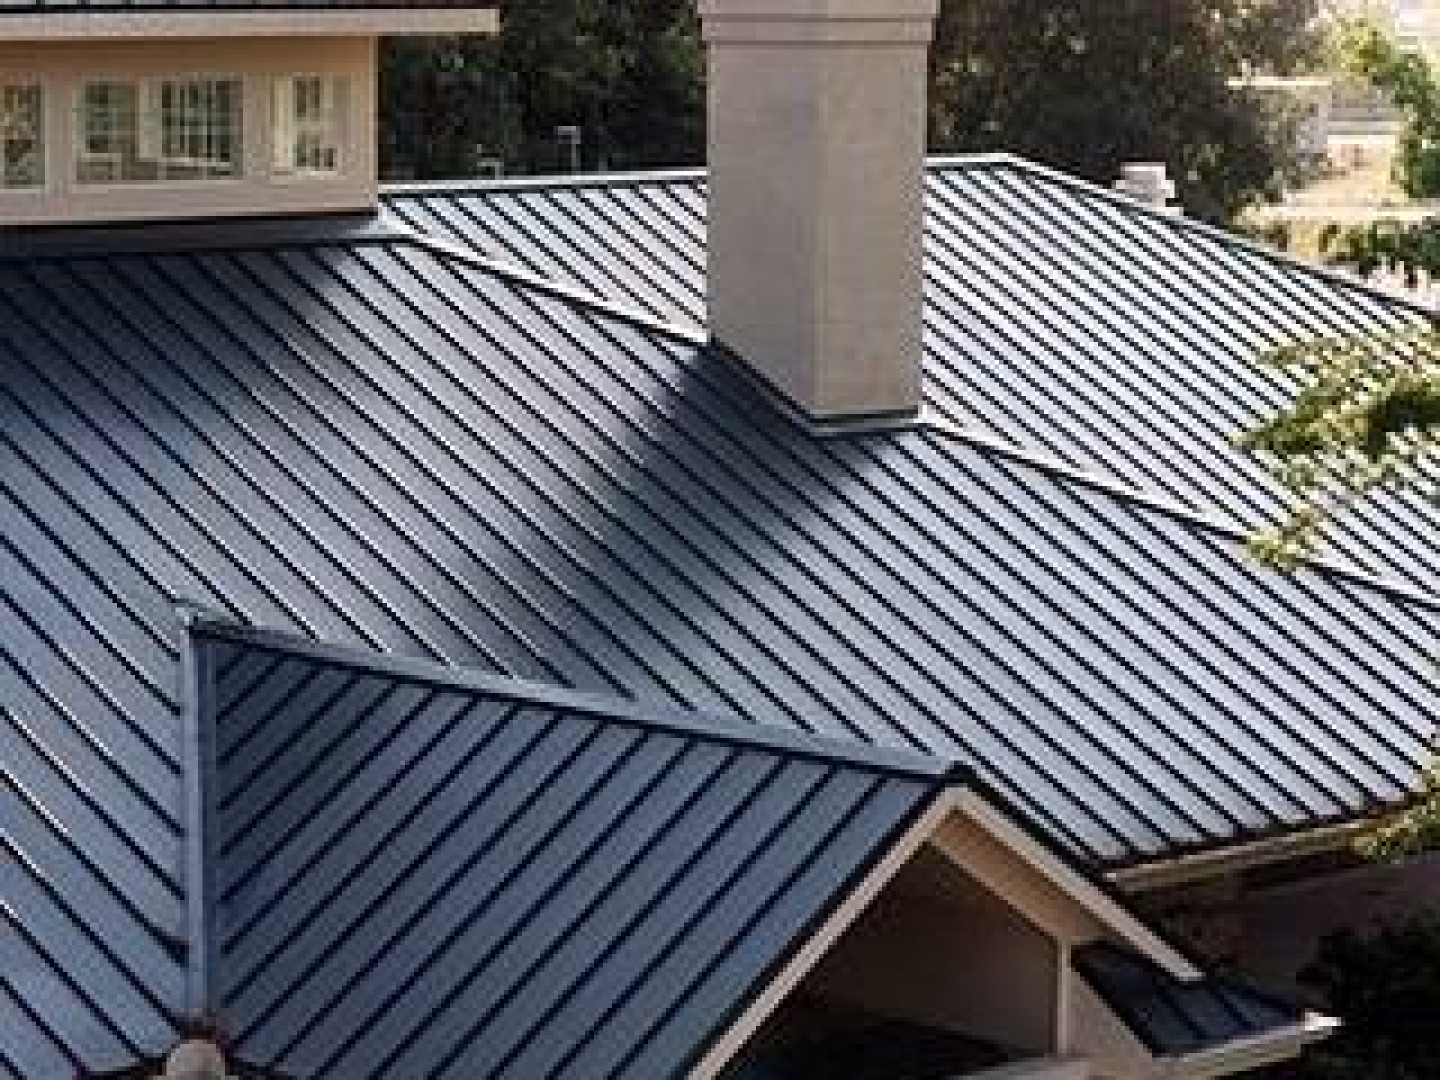 Why should youchoose metal roofing?